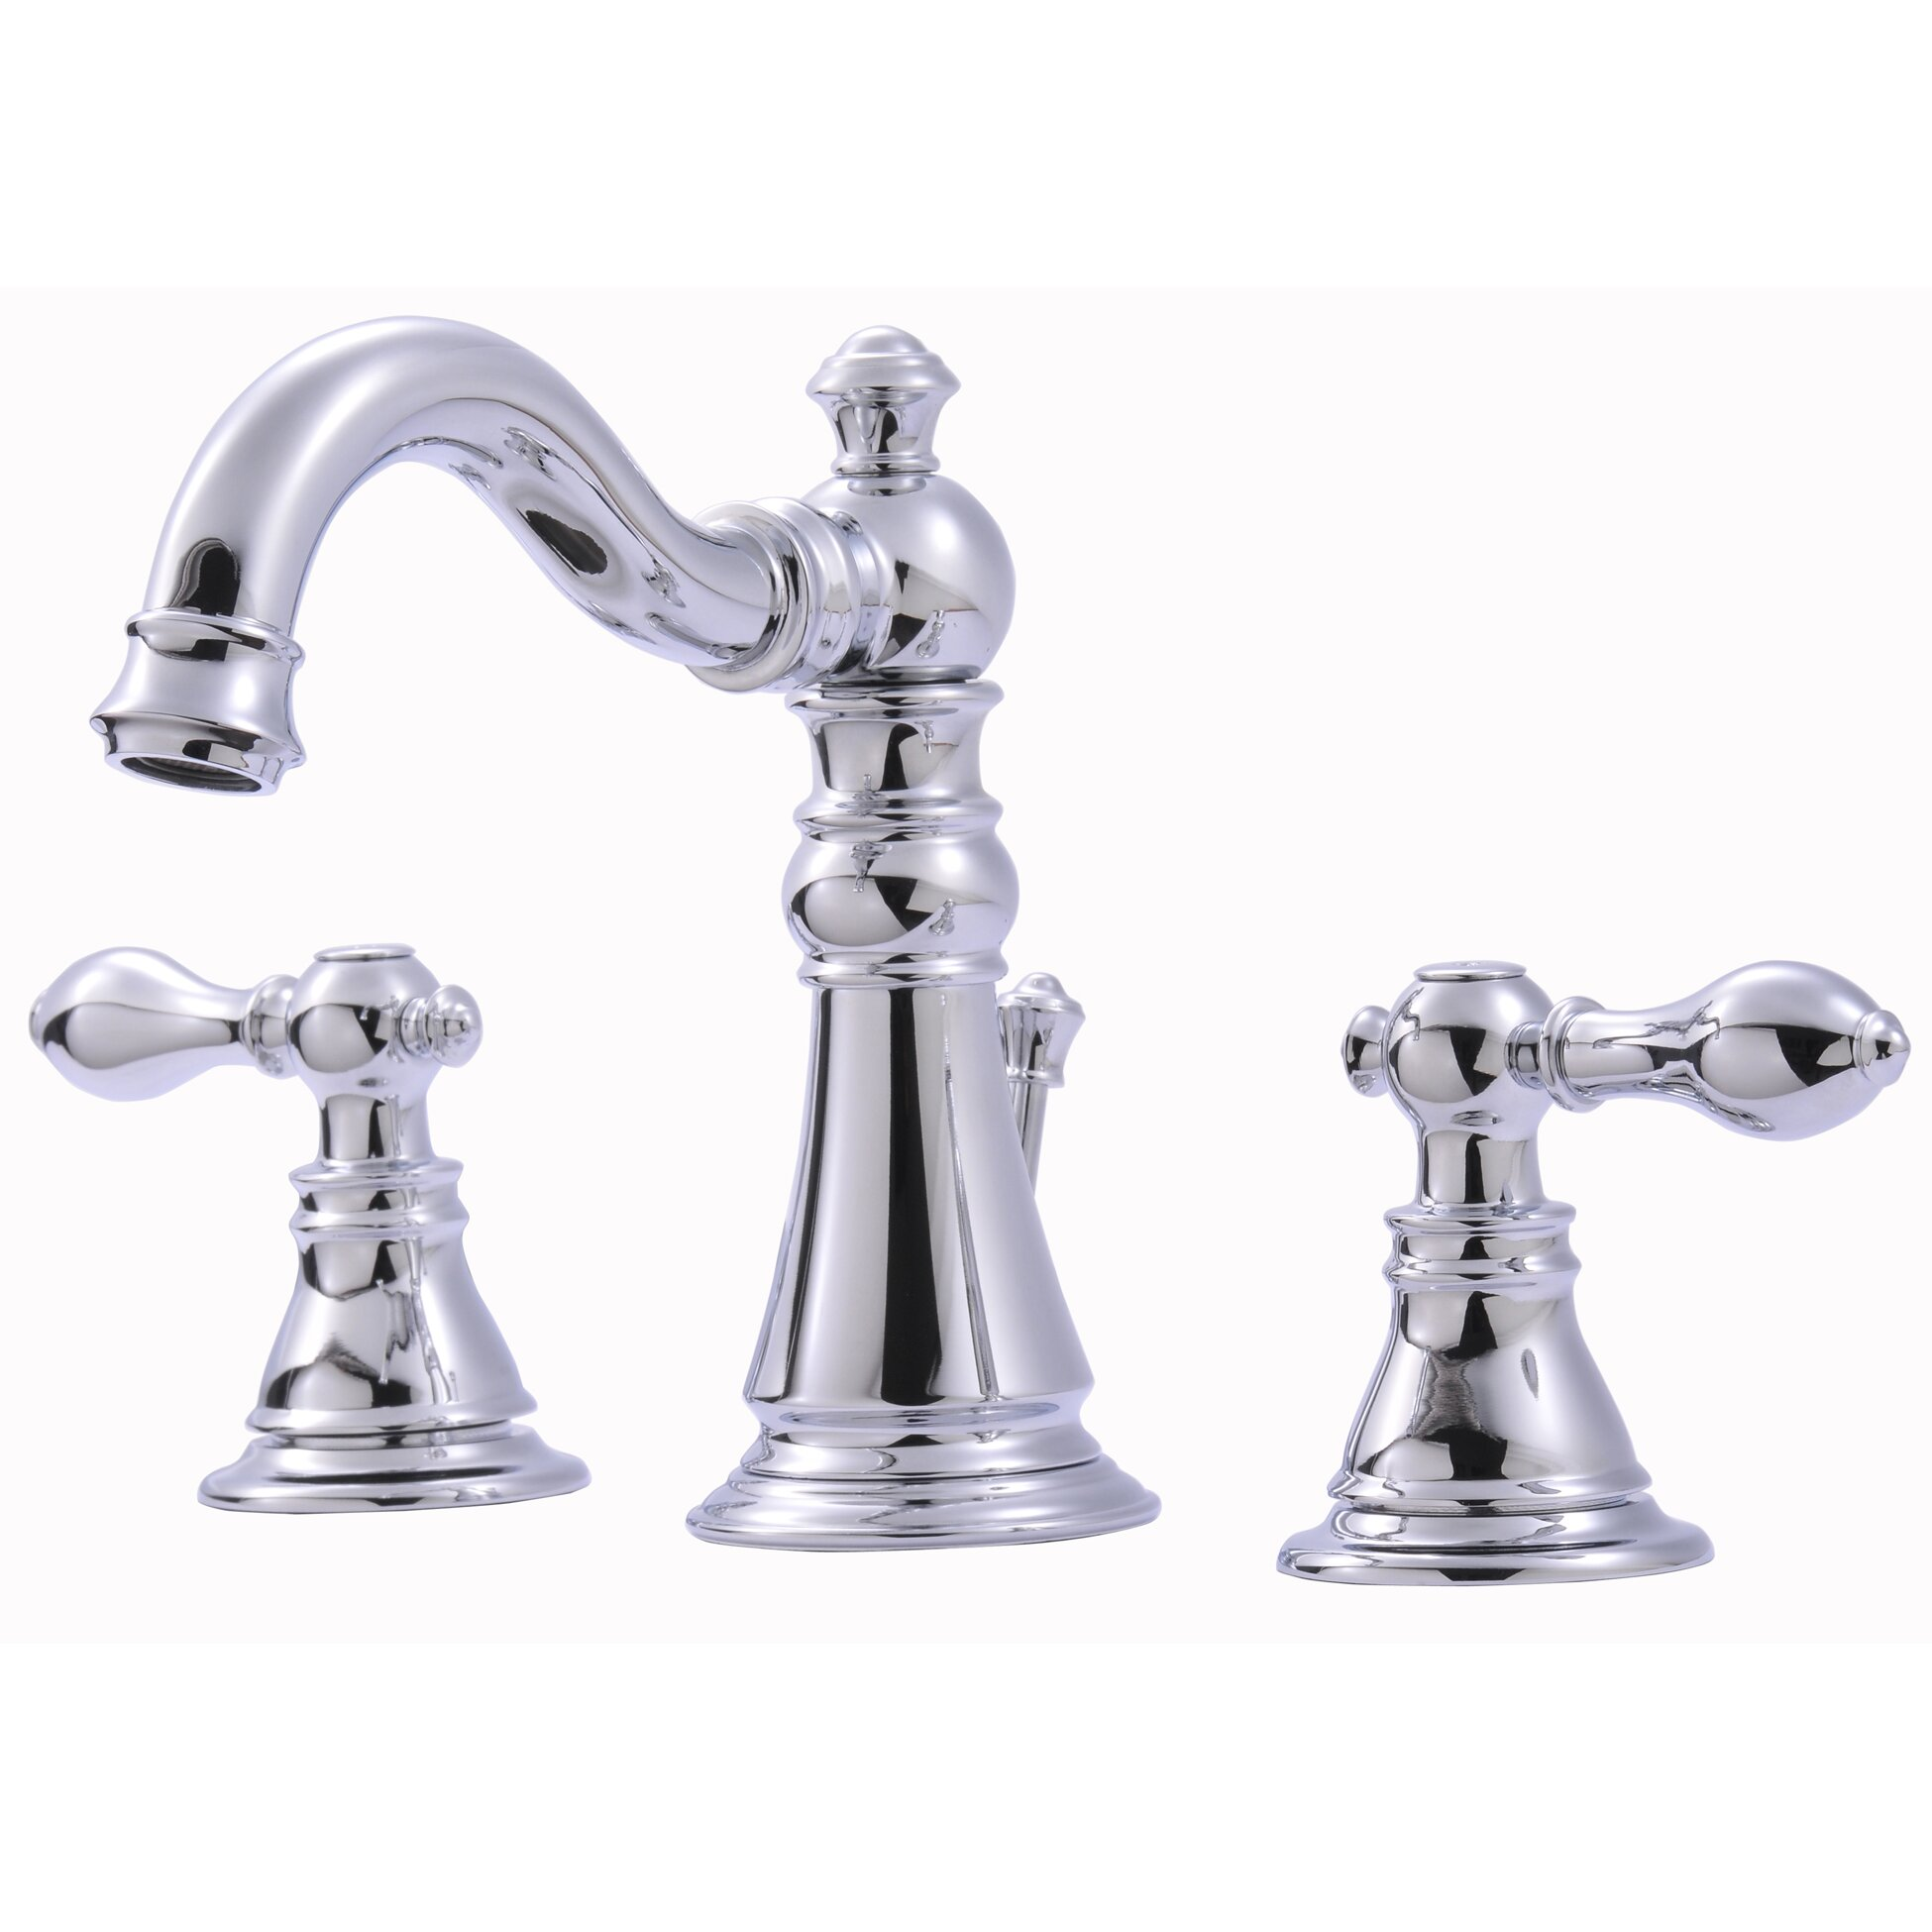 Toilet Faucet : Bathroom Fixtures ... Widespread Bathroom Sink Faucets Ultra Faucets ...